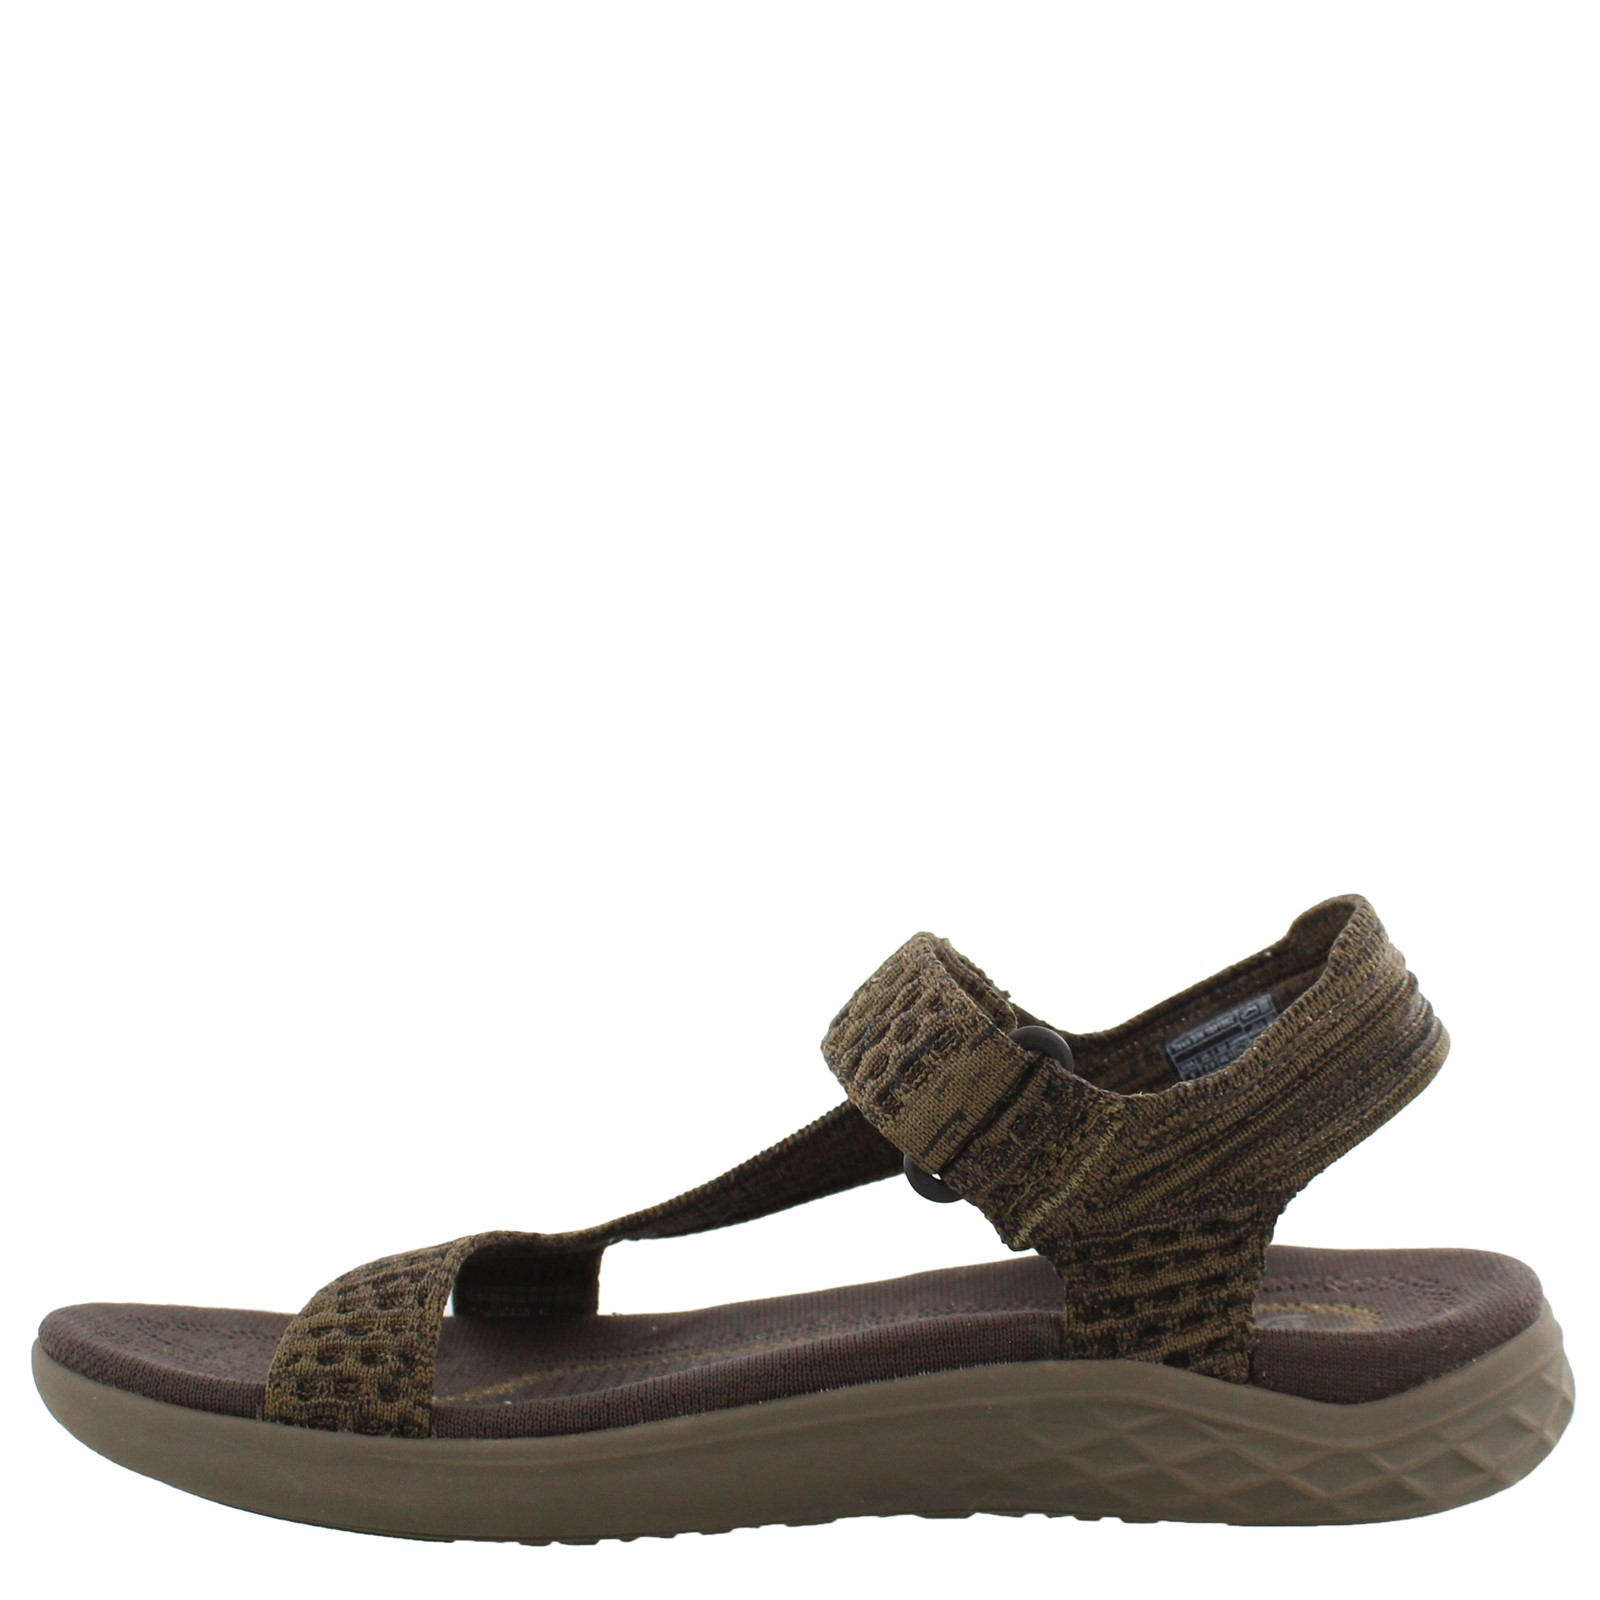 b56623b27c36 ... Terra Float 2 Knit Universal Sandal. Previous. default view · 1 · 2 · 3  ...